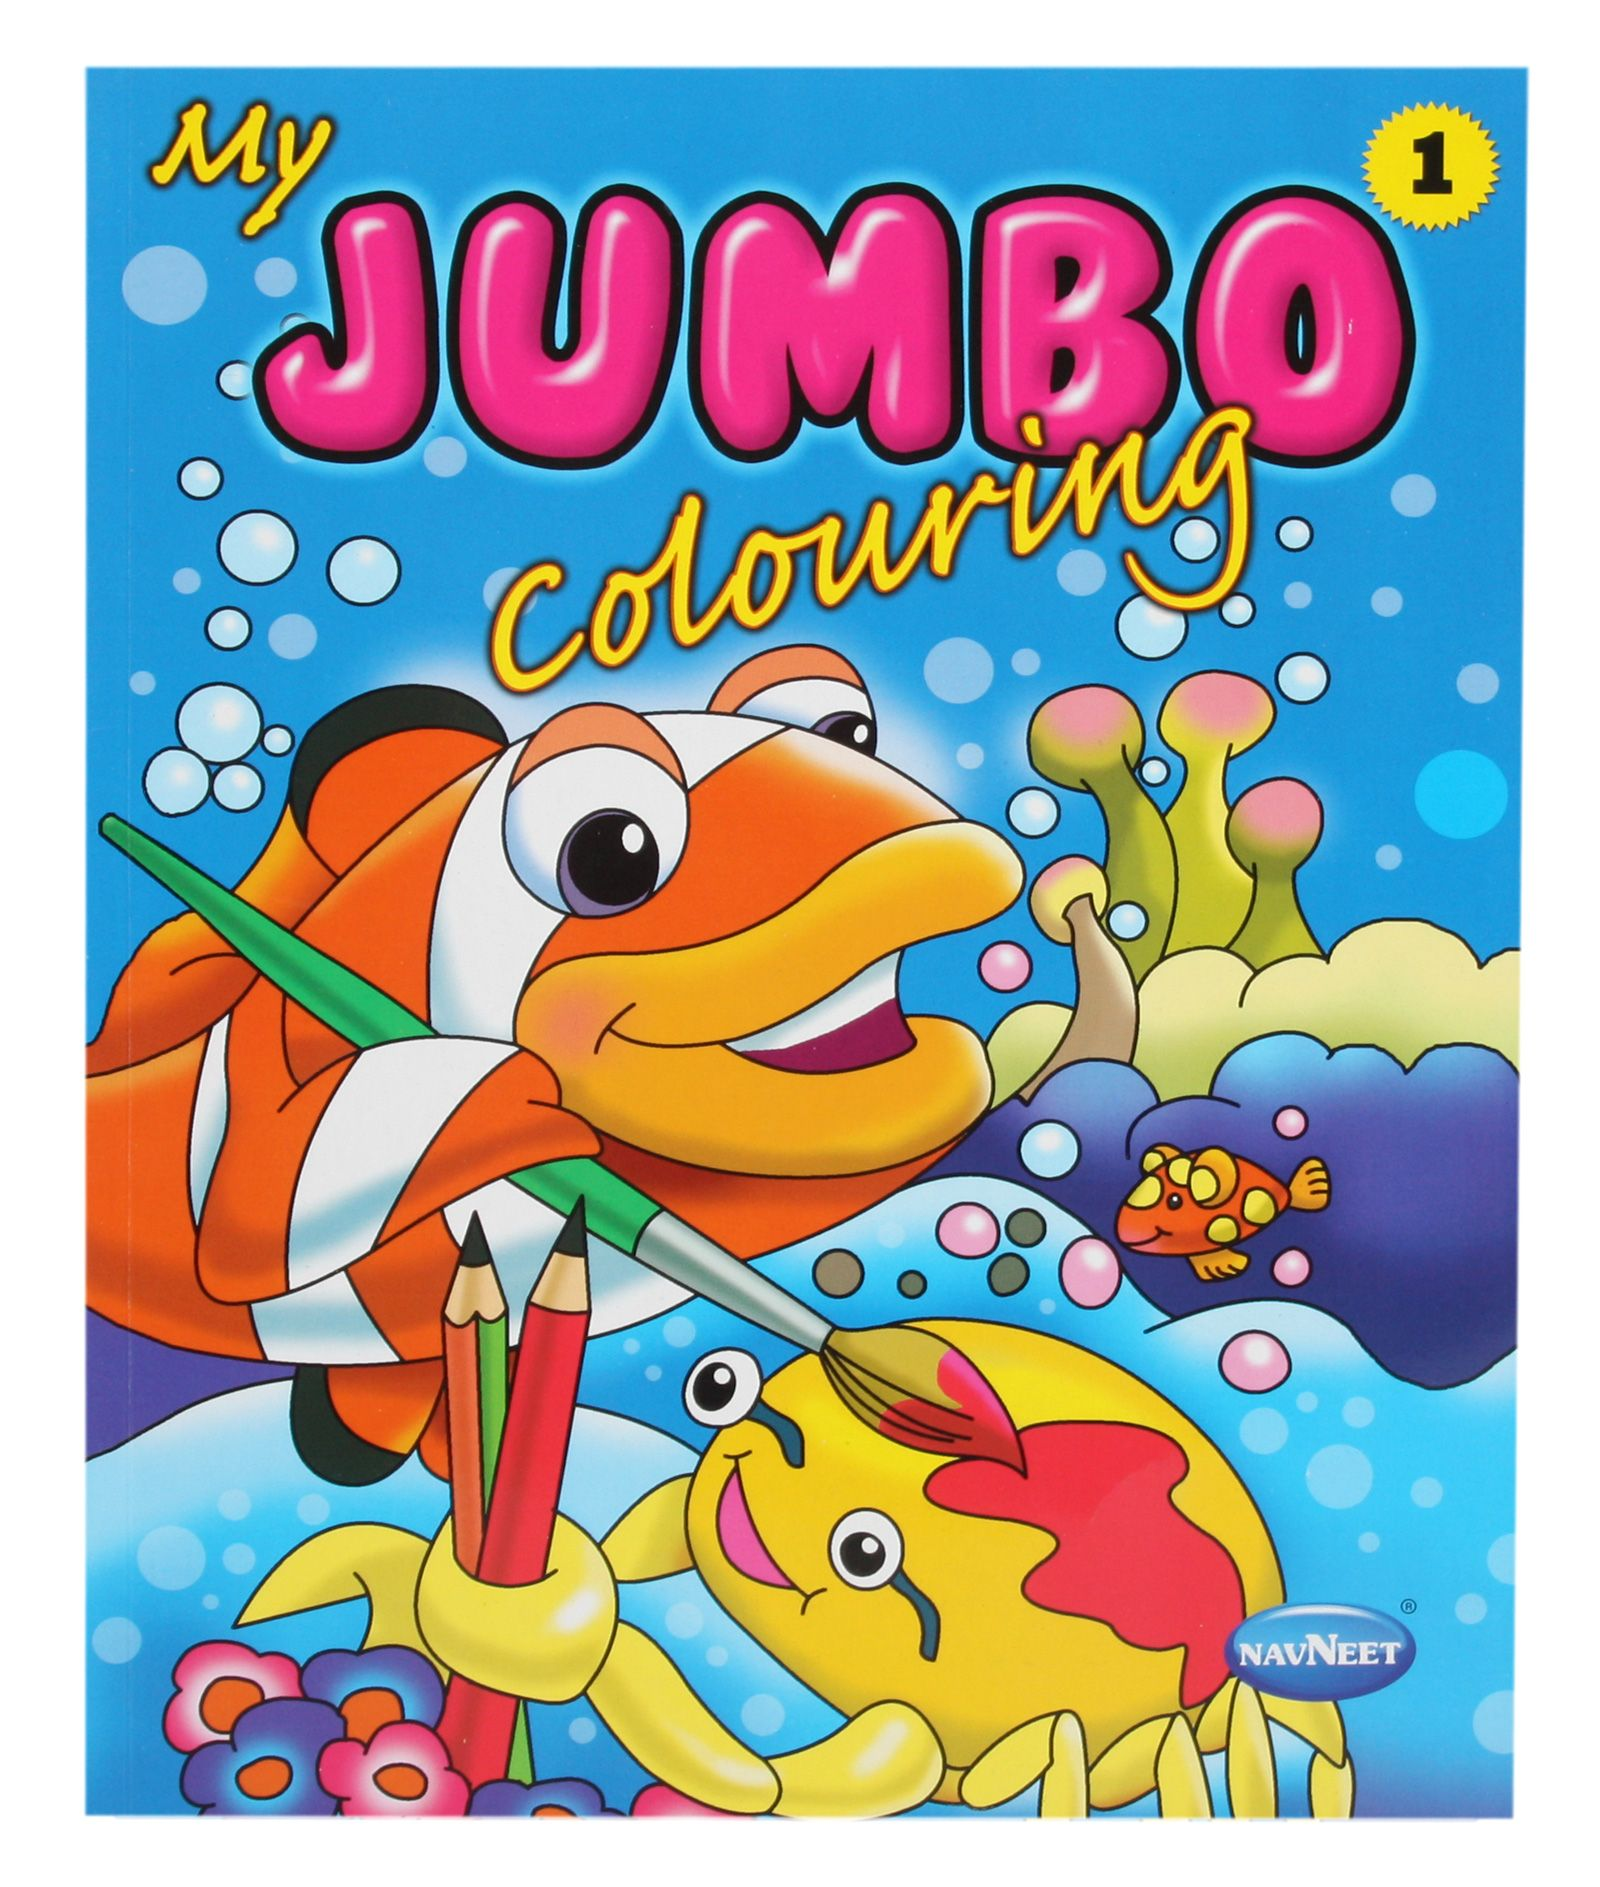 Navneet My Jumbo Coloring Book line in India Buy at